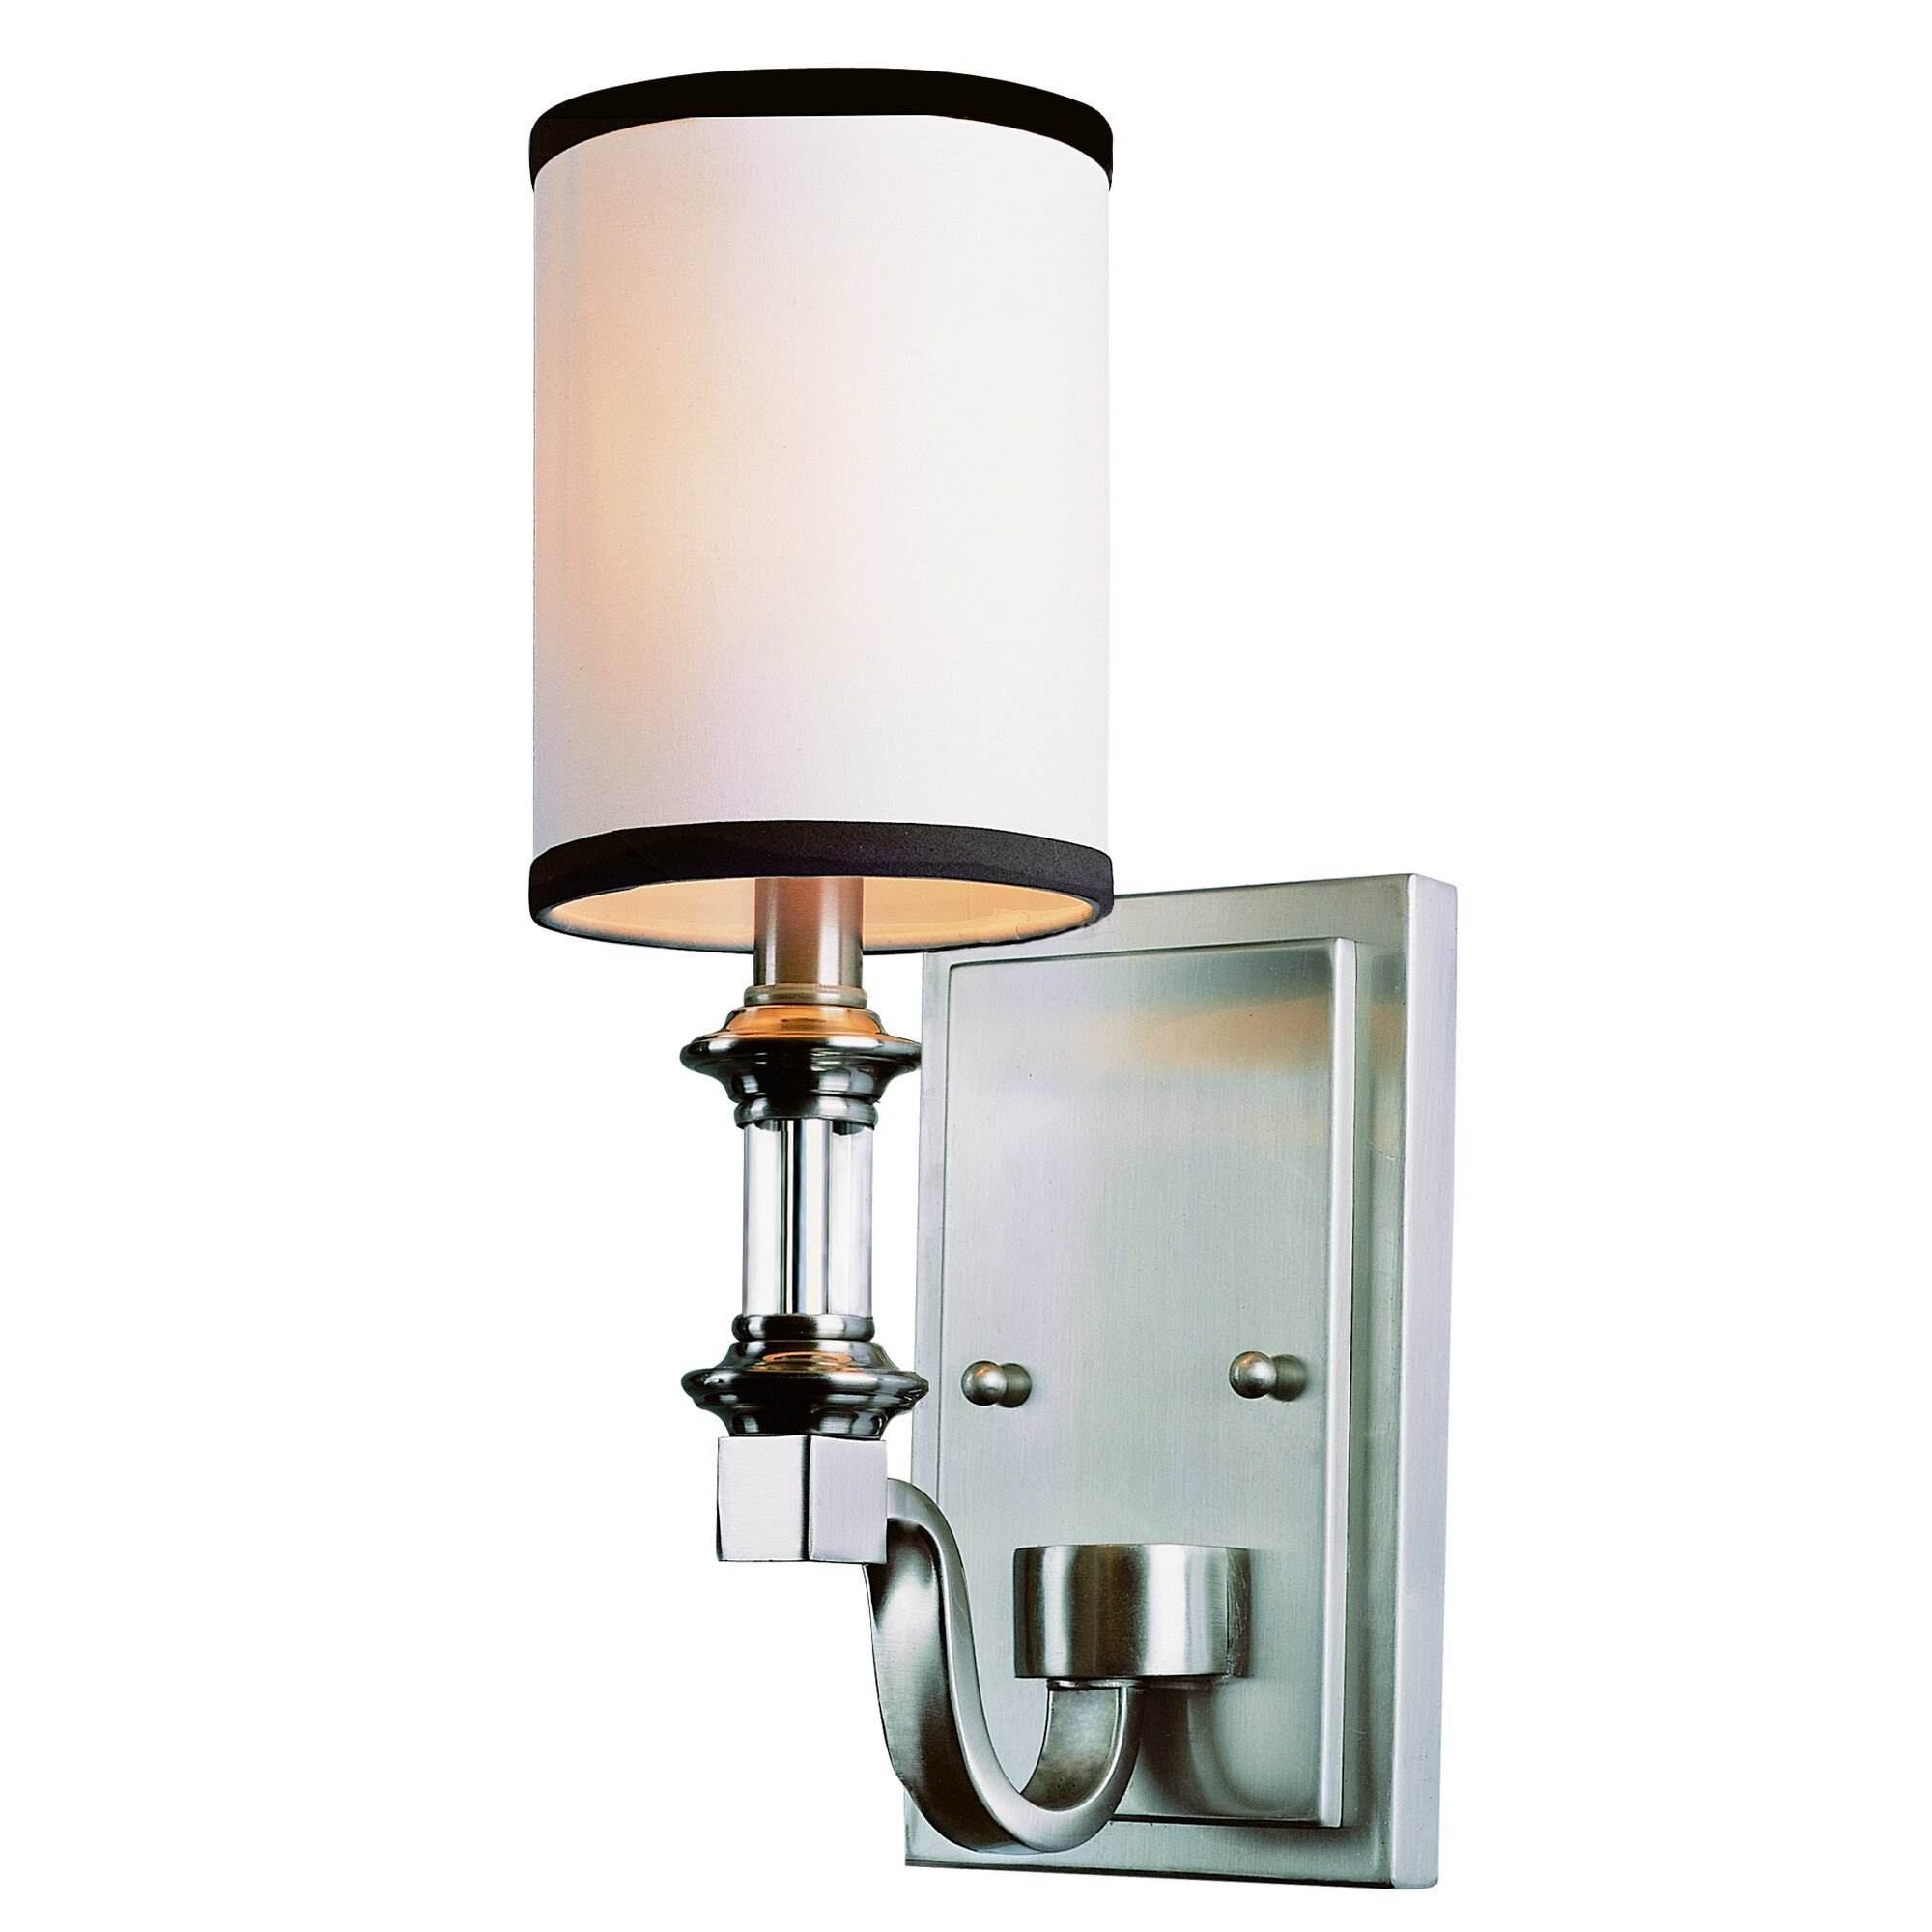 Traditional Wall Sconce With Switch : TransGlobe Lighting Modern Meets Traditional 1-Light Wall Sconce & Reviews Wayfair